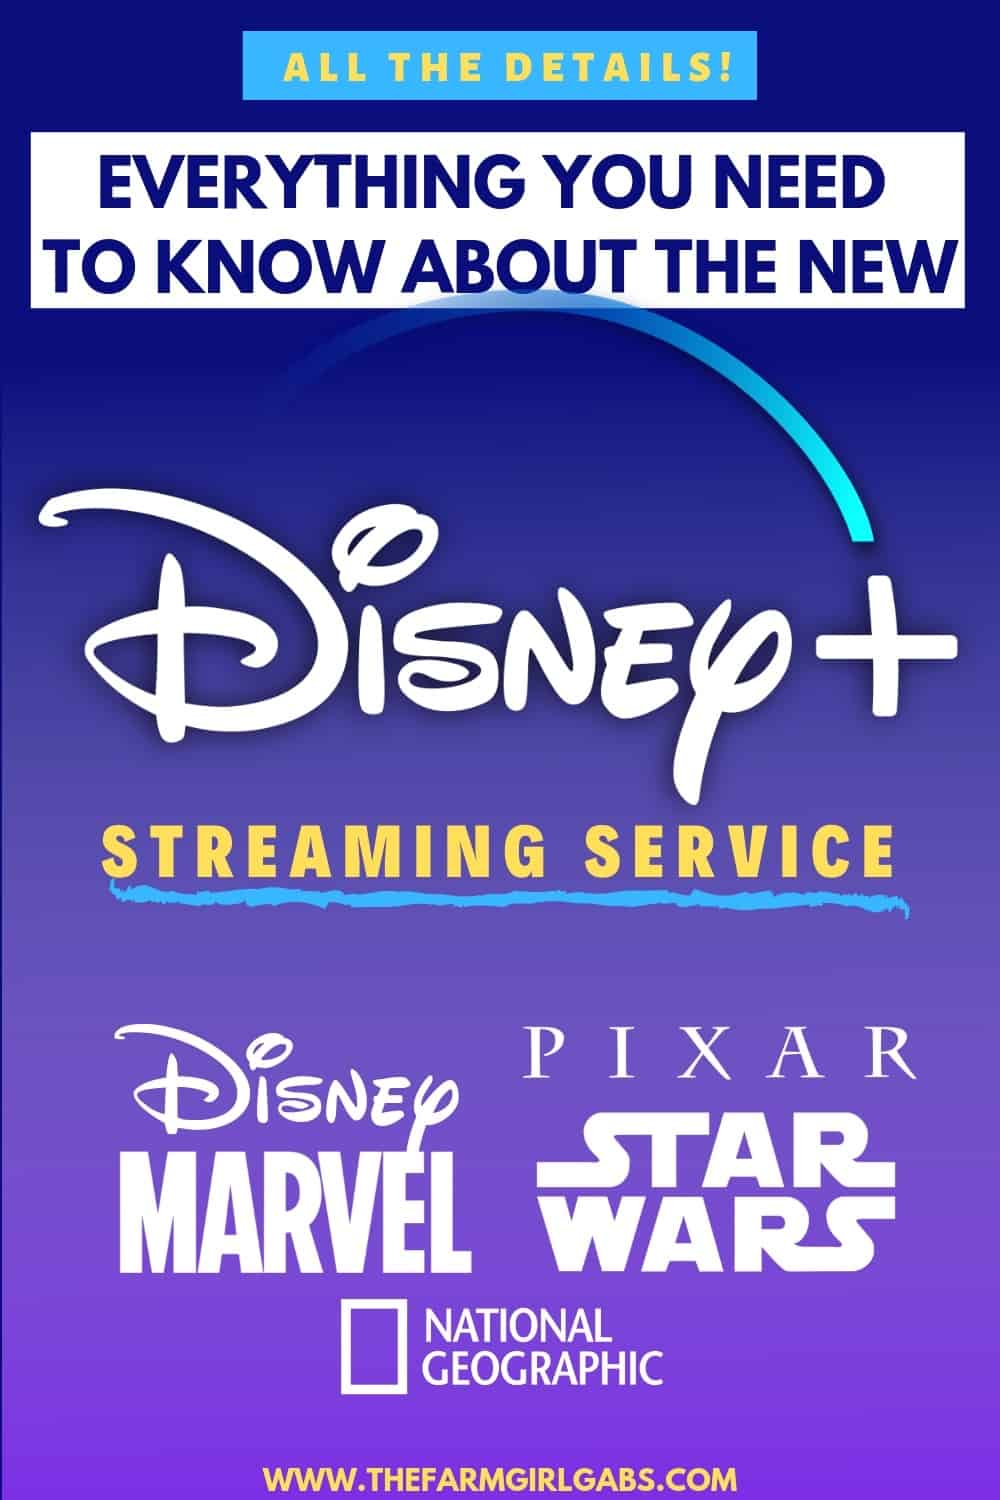 There is a new streaming service in town. Here is everything you need to know about the NEW Disney Plus Streaming Service which launches on November 12, 2019. #disneyplus #Disney+ #DisneyMovies #Marvel #StarWars #pixar